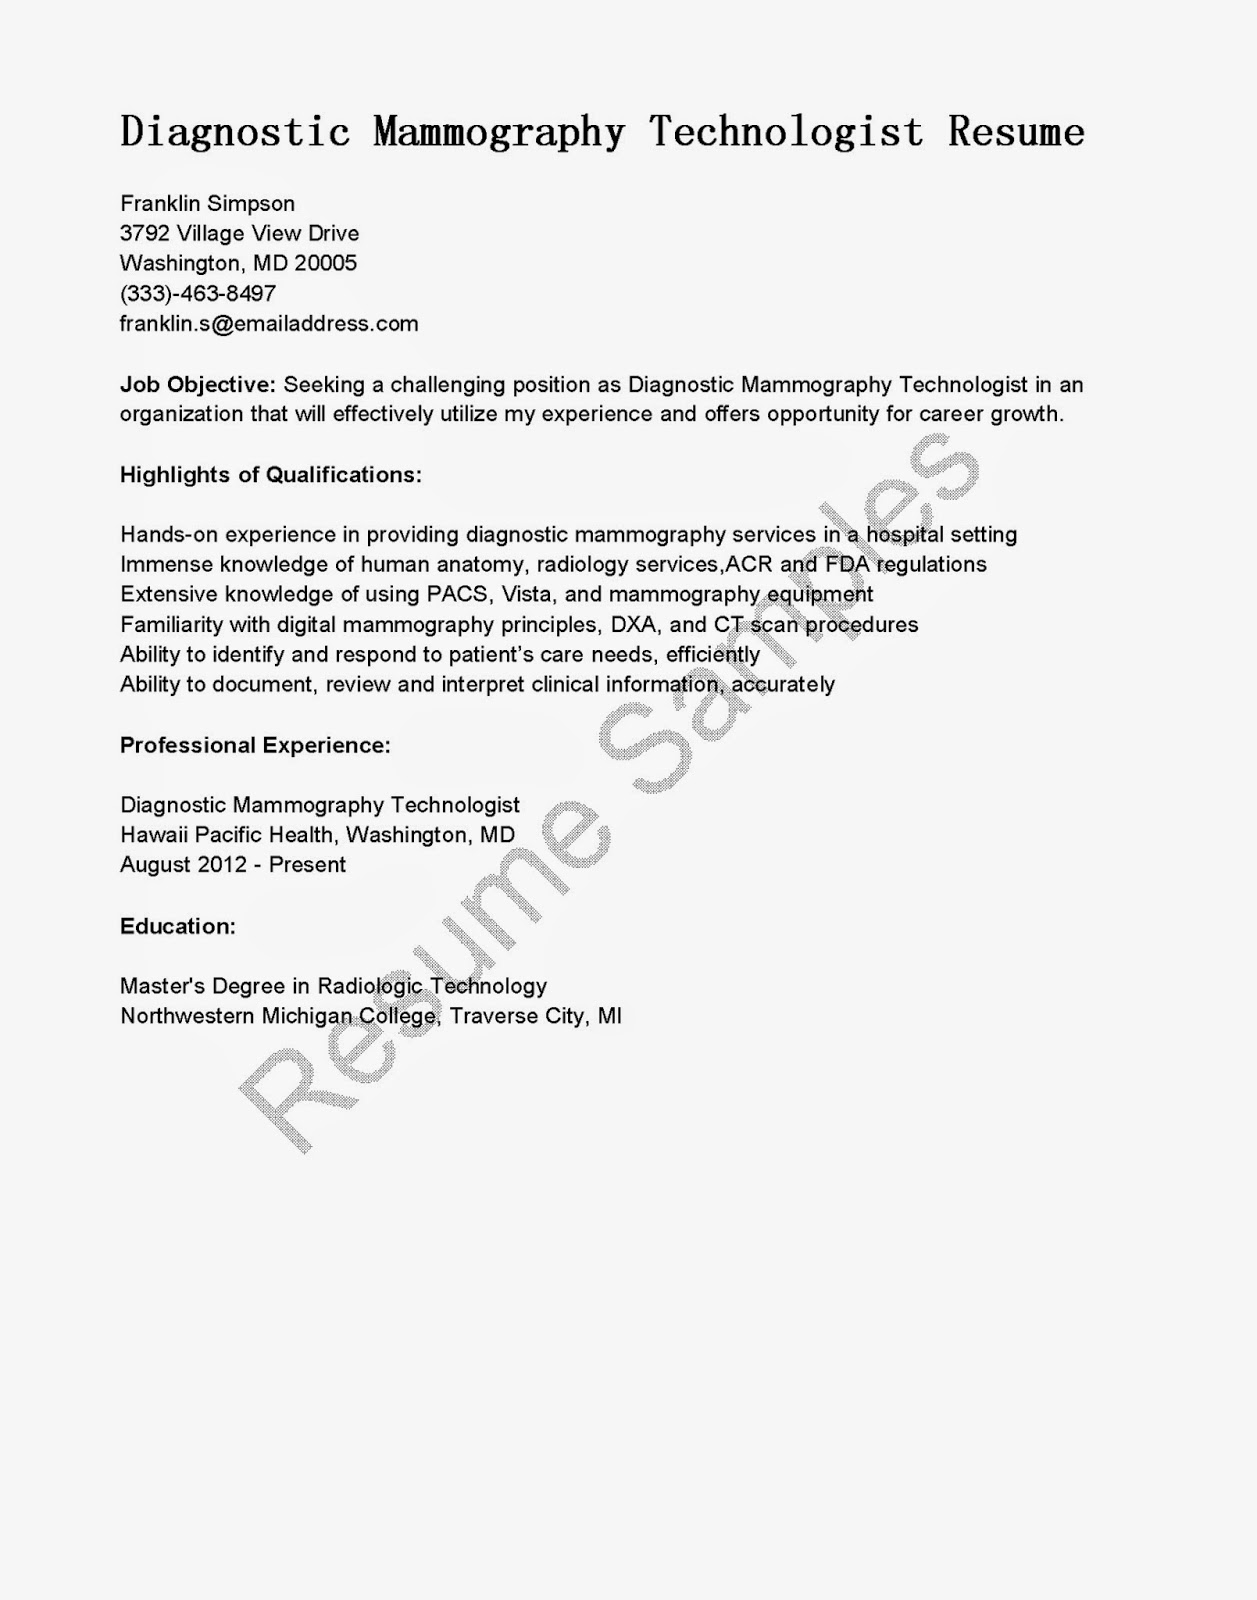 Resume Samples Diagnostic Mammography Technologist Resume